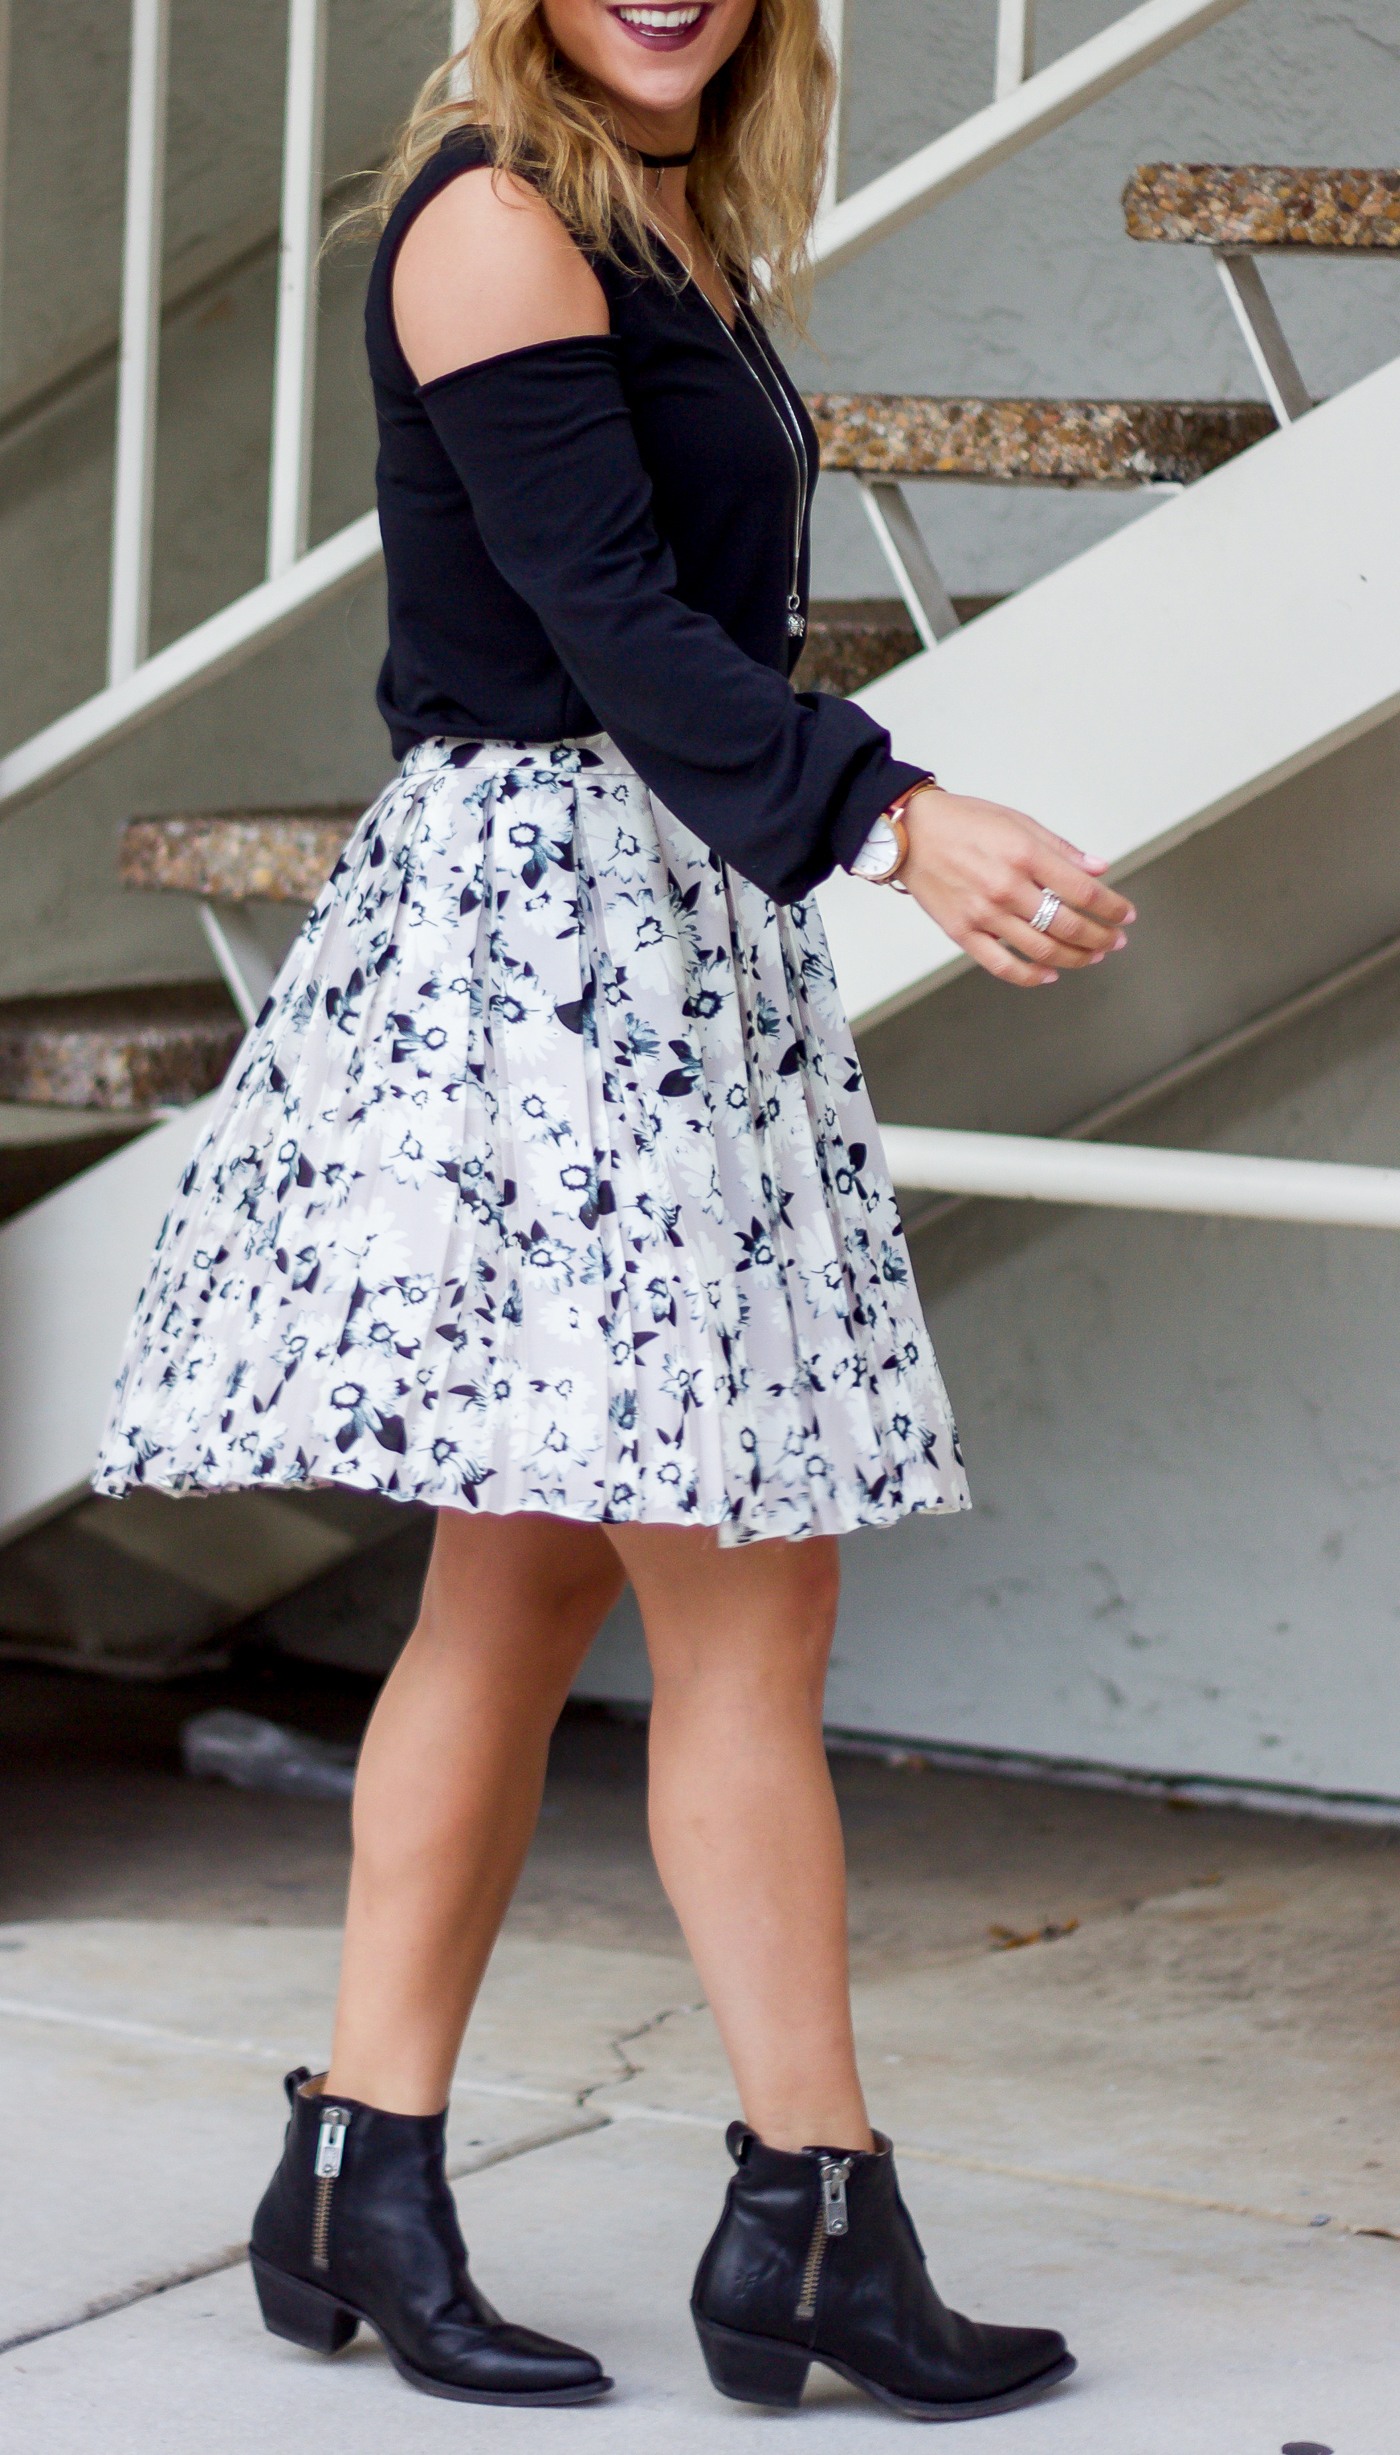 Floral skirt from Banana Republic and Frye black ankle booties from Shopbop